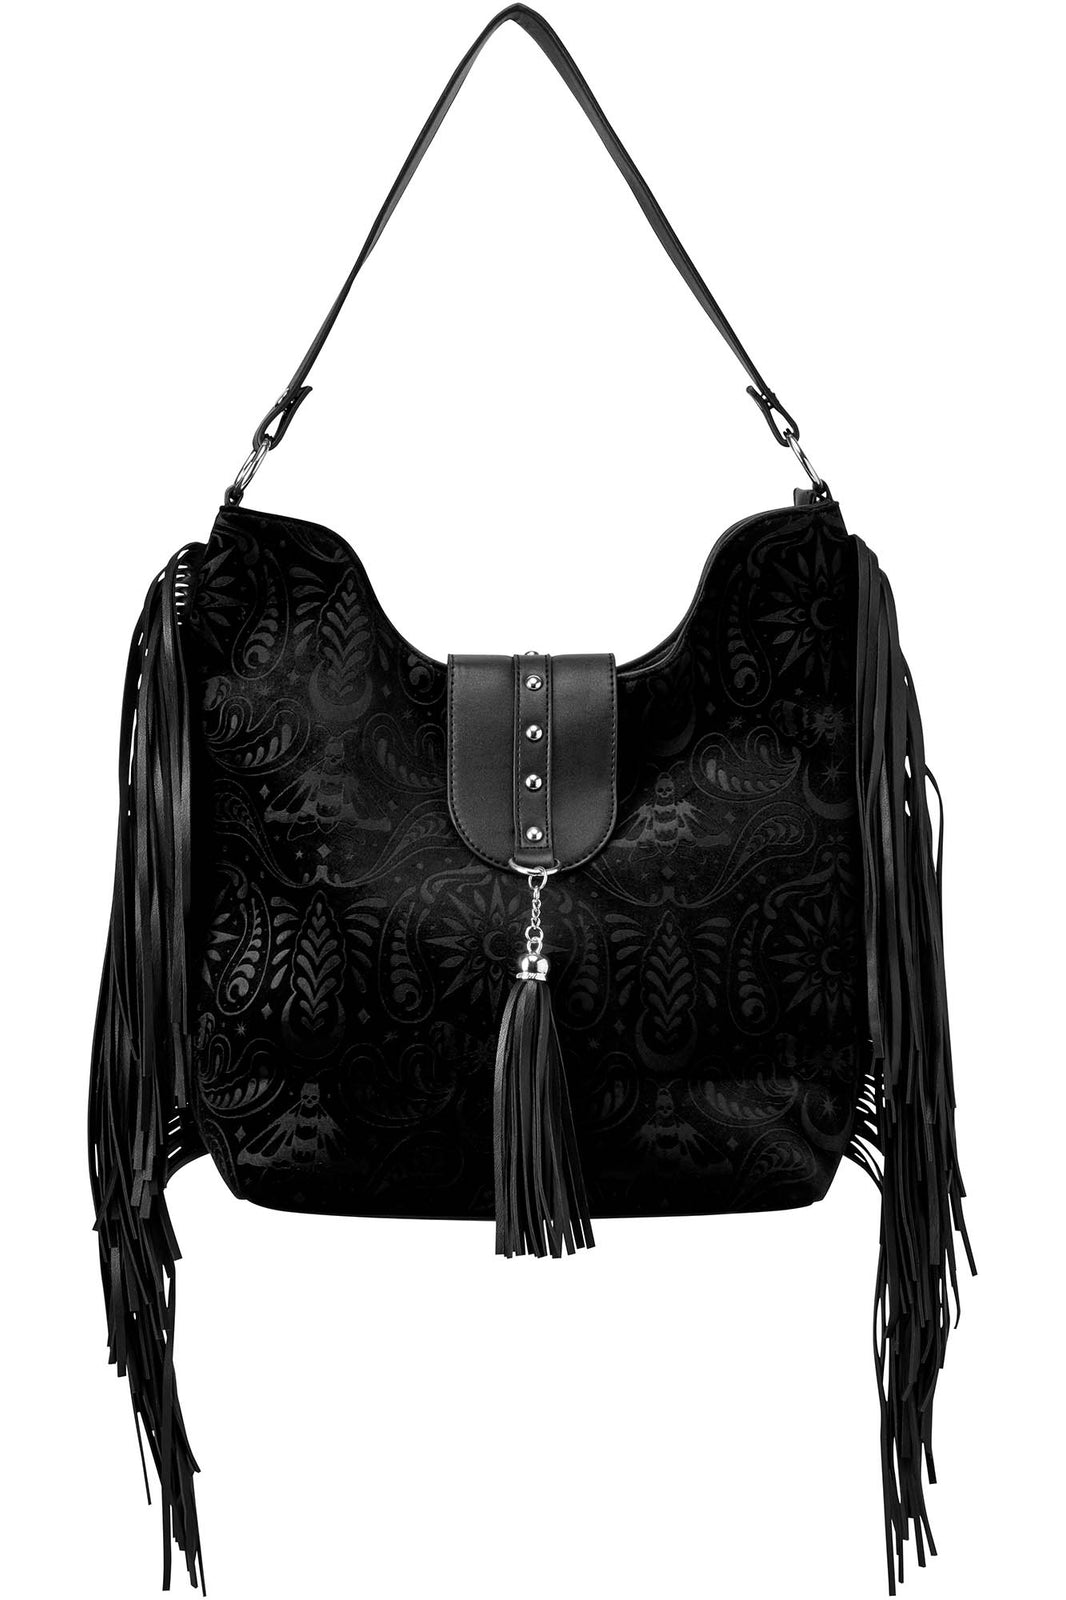 Blackwood Velvet Handbag